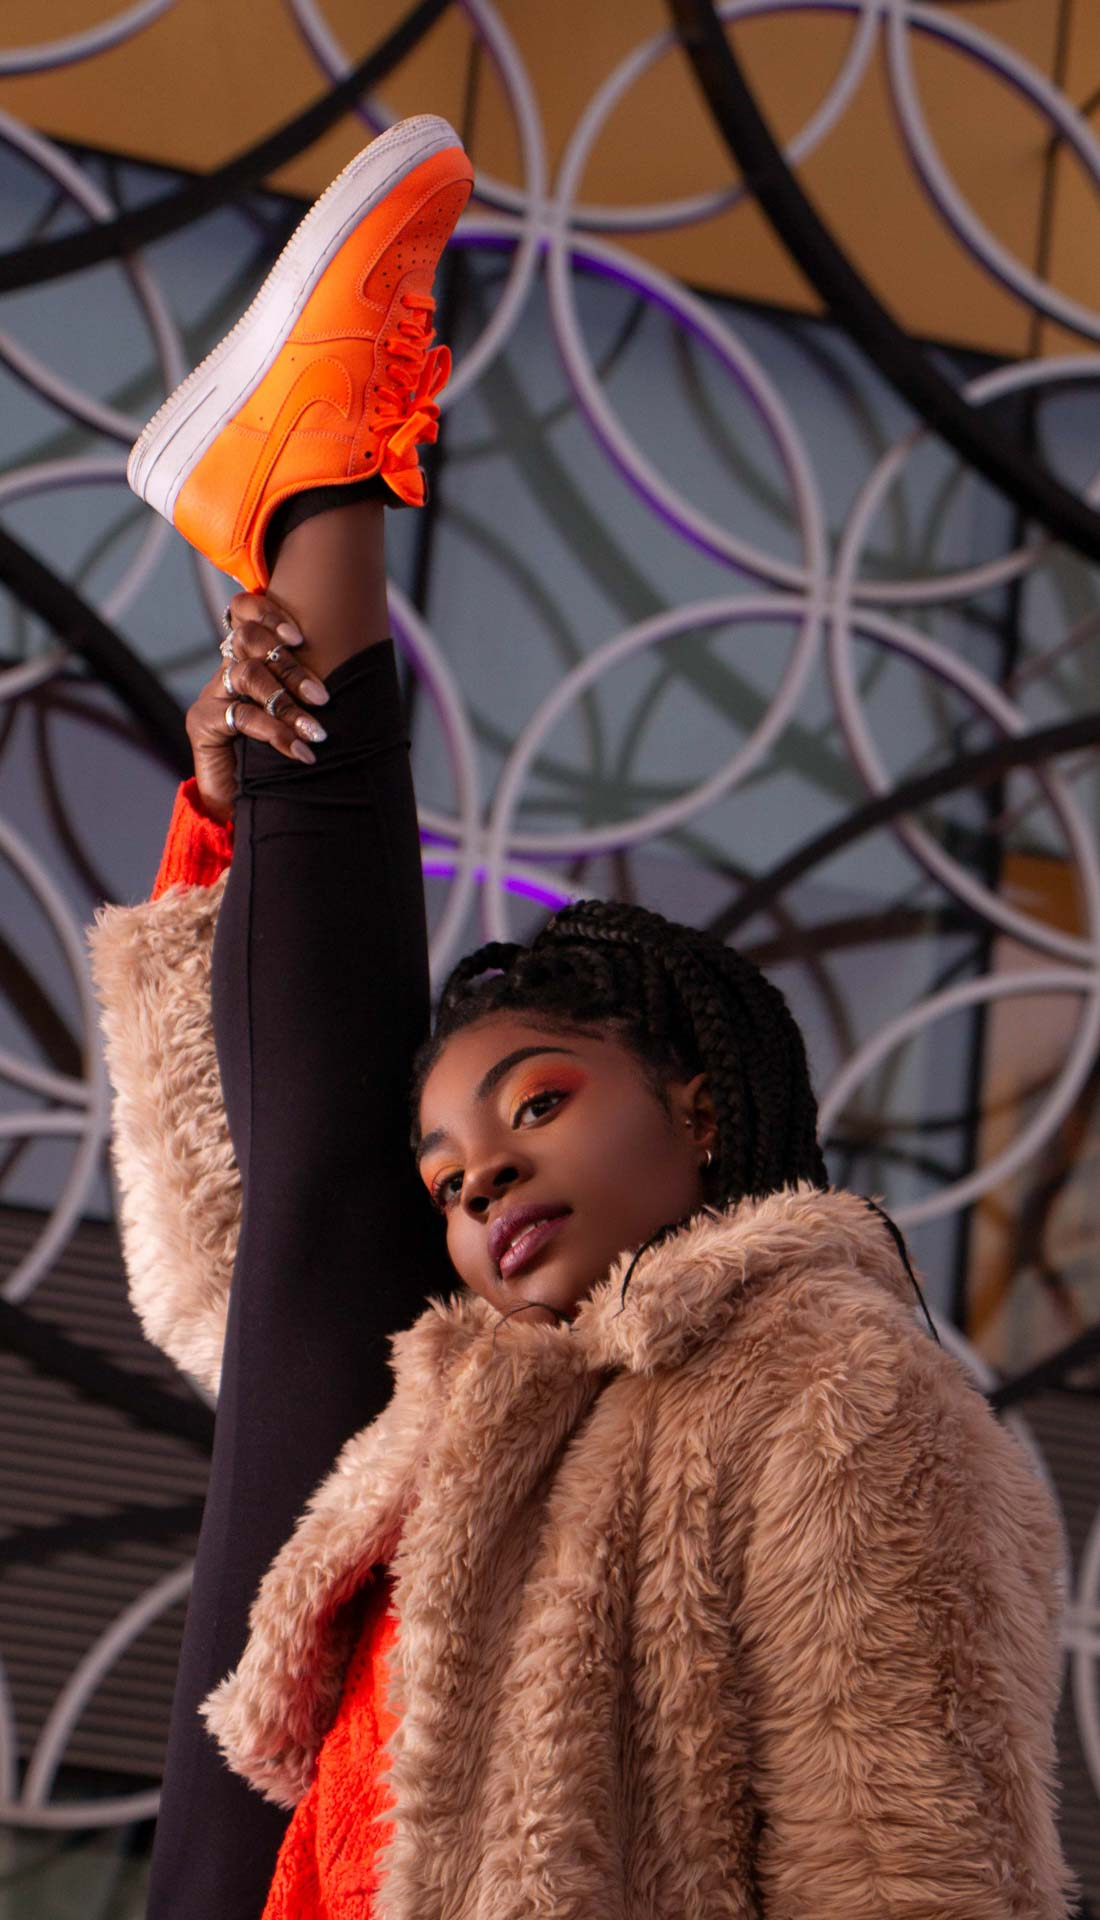 Birmingham street dancer posing her orange Nike shoes while stretching her leg in a split